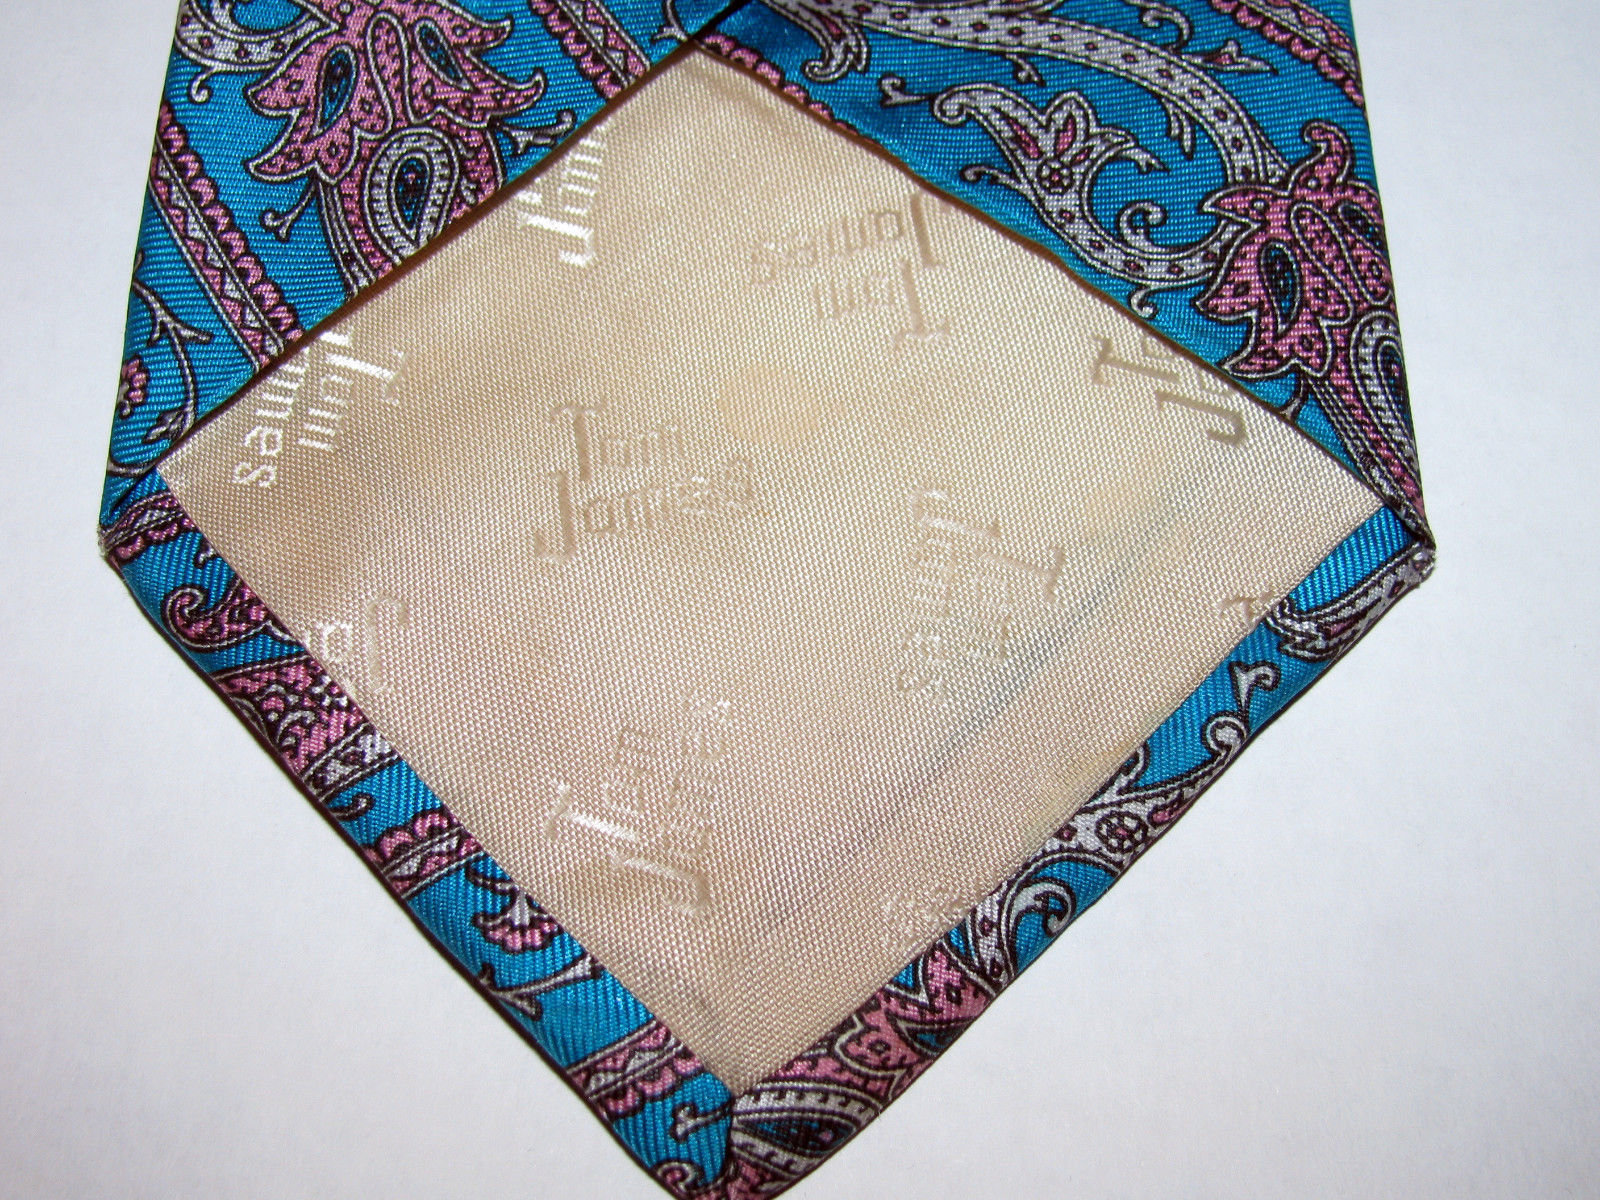 Vintage Tom James Turquoise Blue Green Paisley Silk Necktie Made in USA image 5